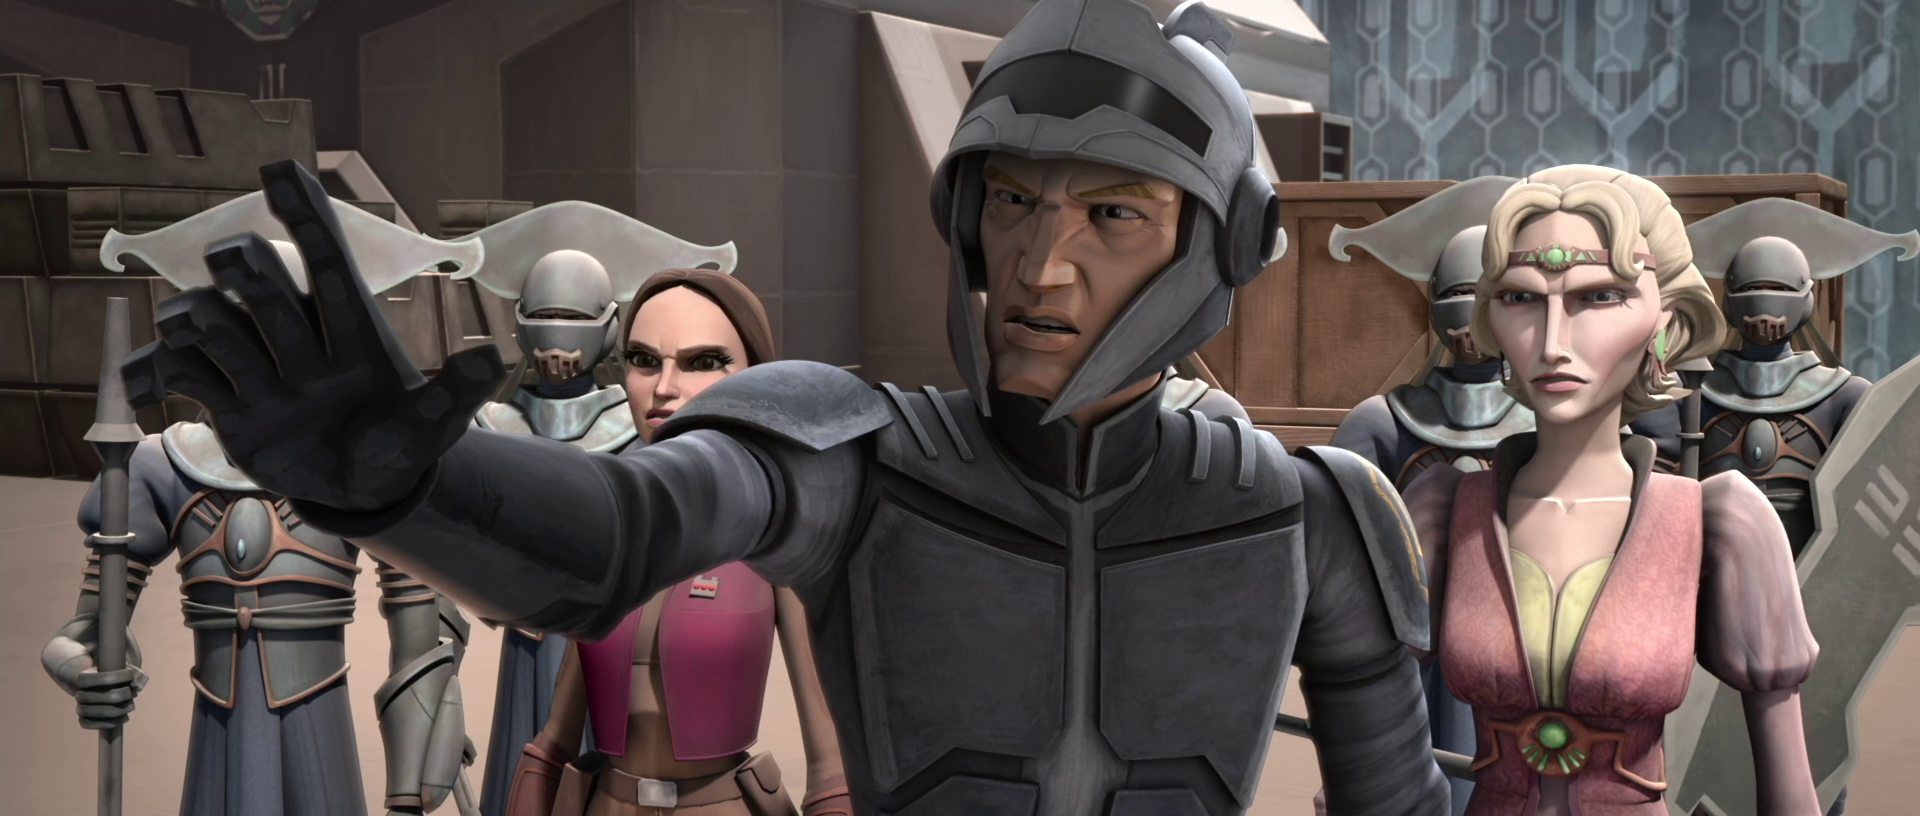 Star Wars: The Clone Wars - May 3rd